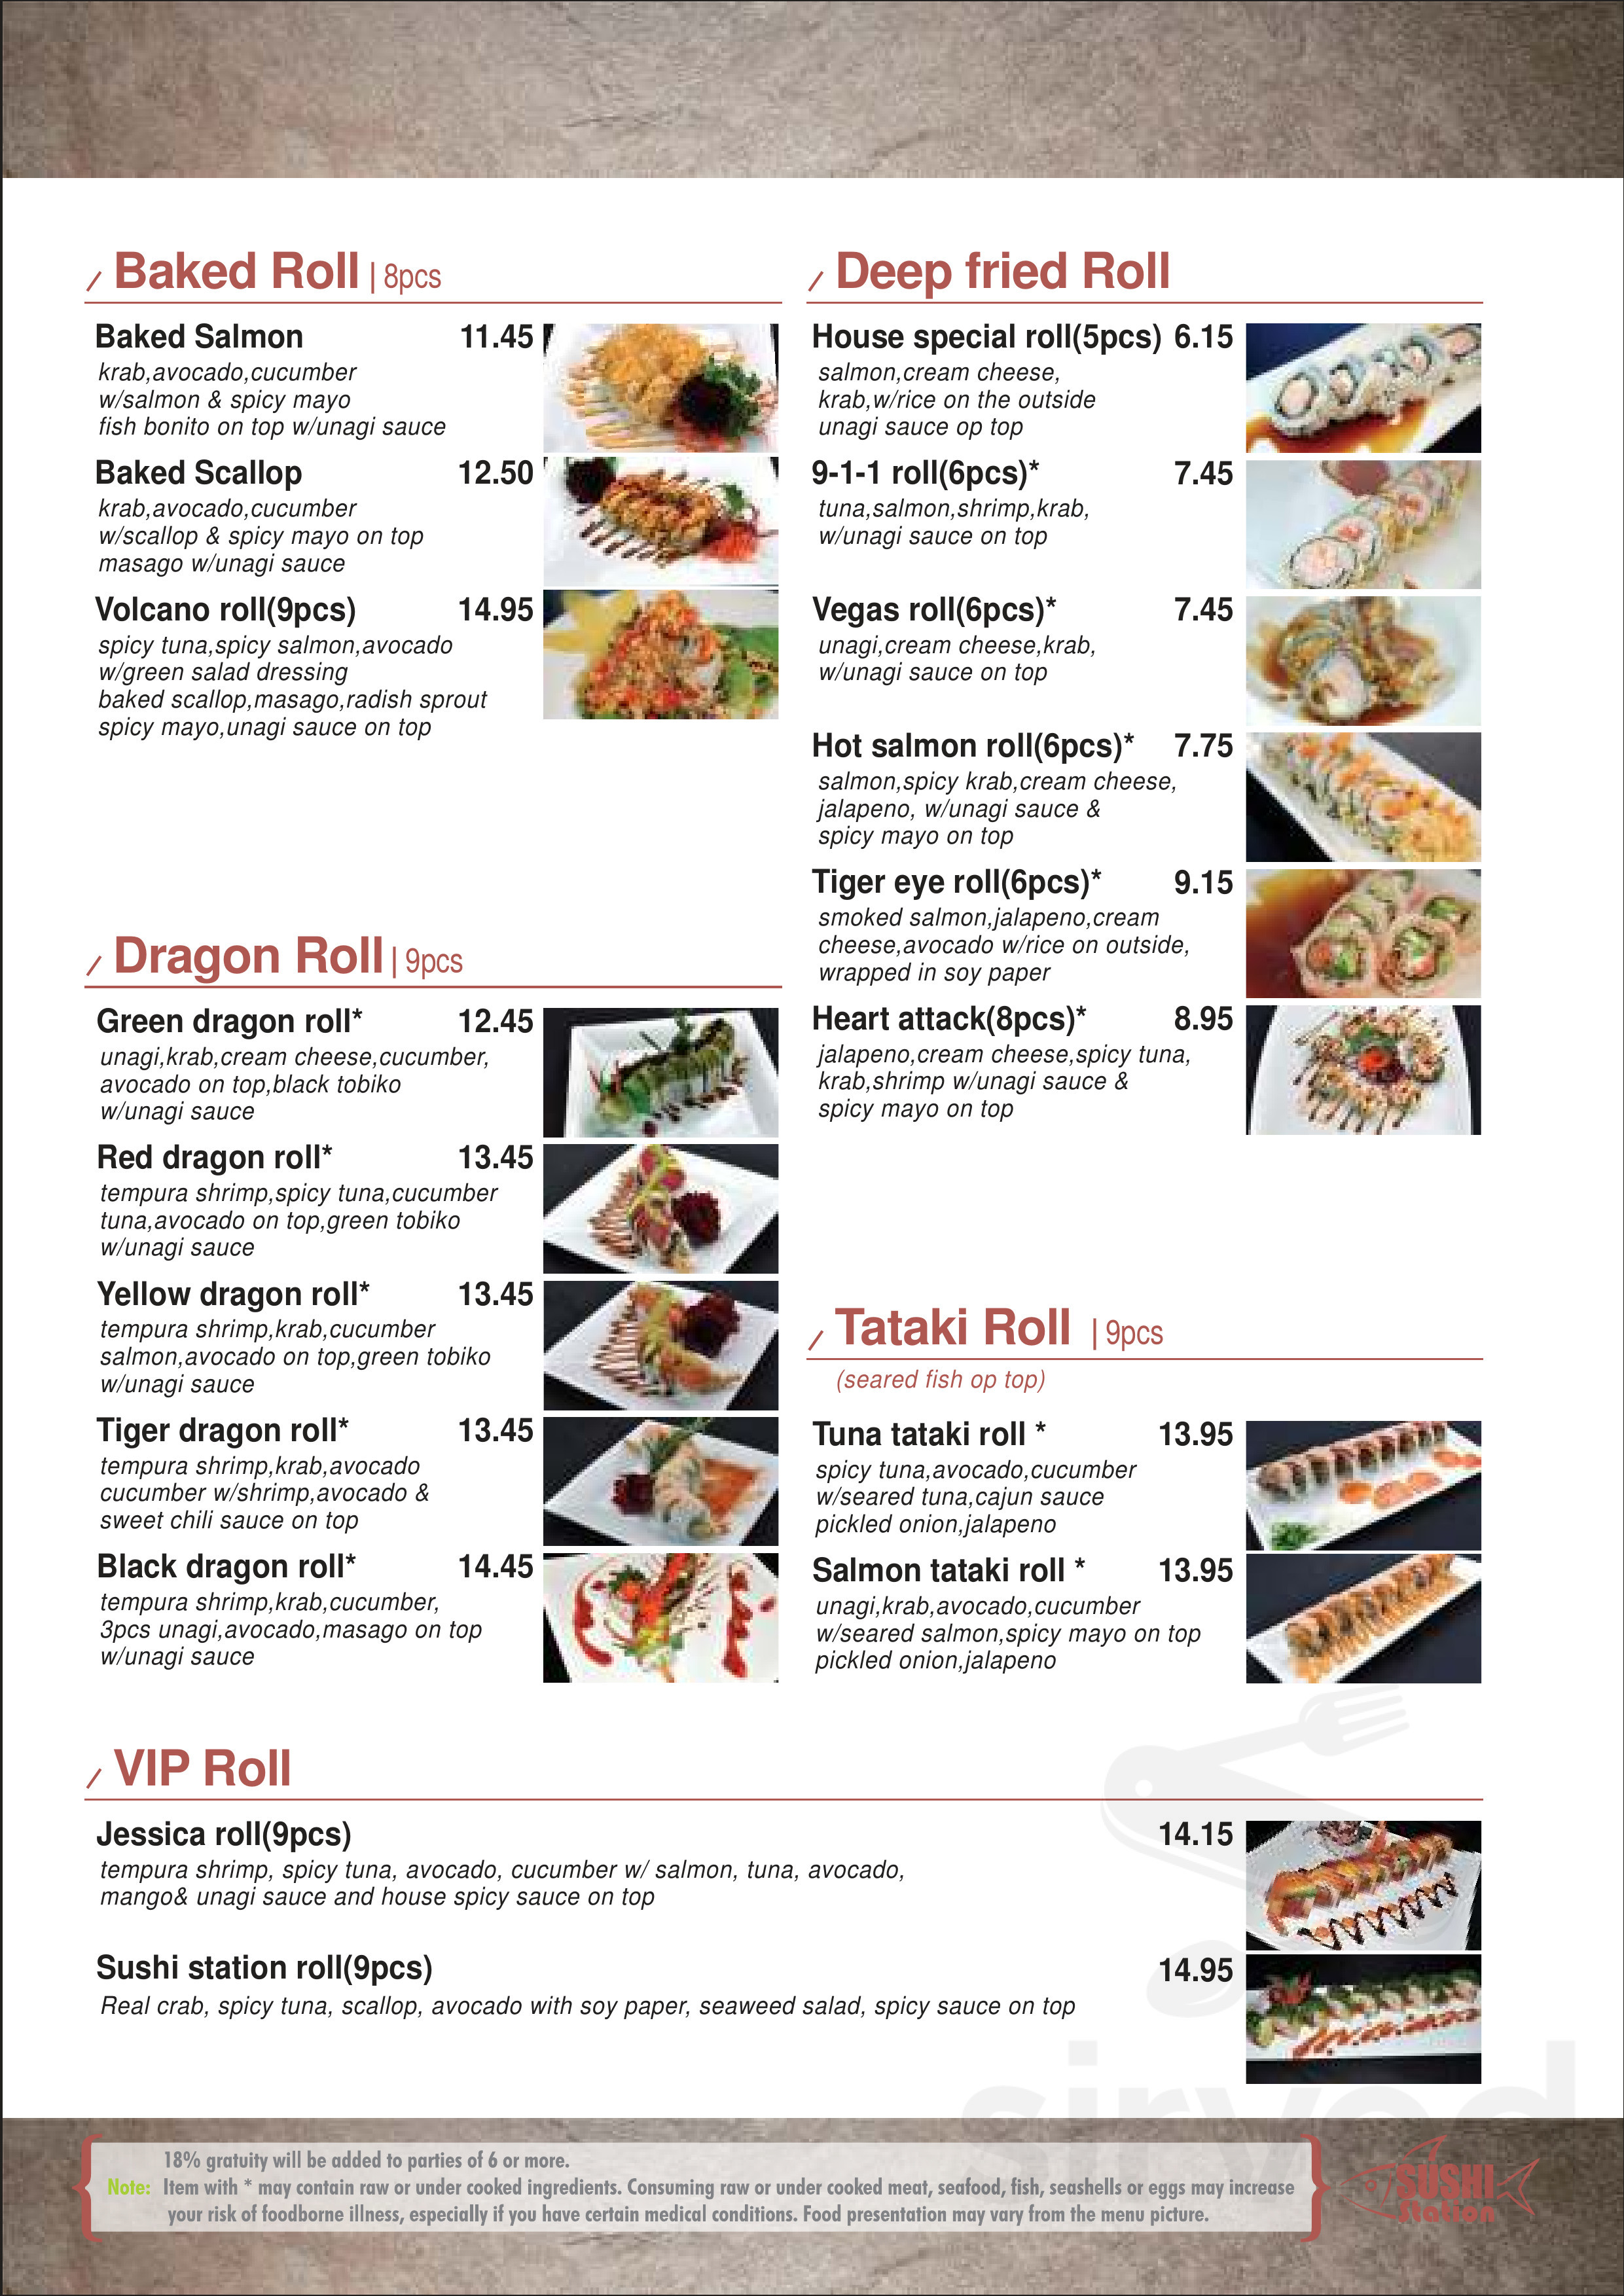 Sushi Station Japanese Restaurant Menu In Eugene Oregon Learn vocabulary, terms and more with flashcards, games and other study tools. sushi station japanese restaurant menu